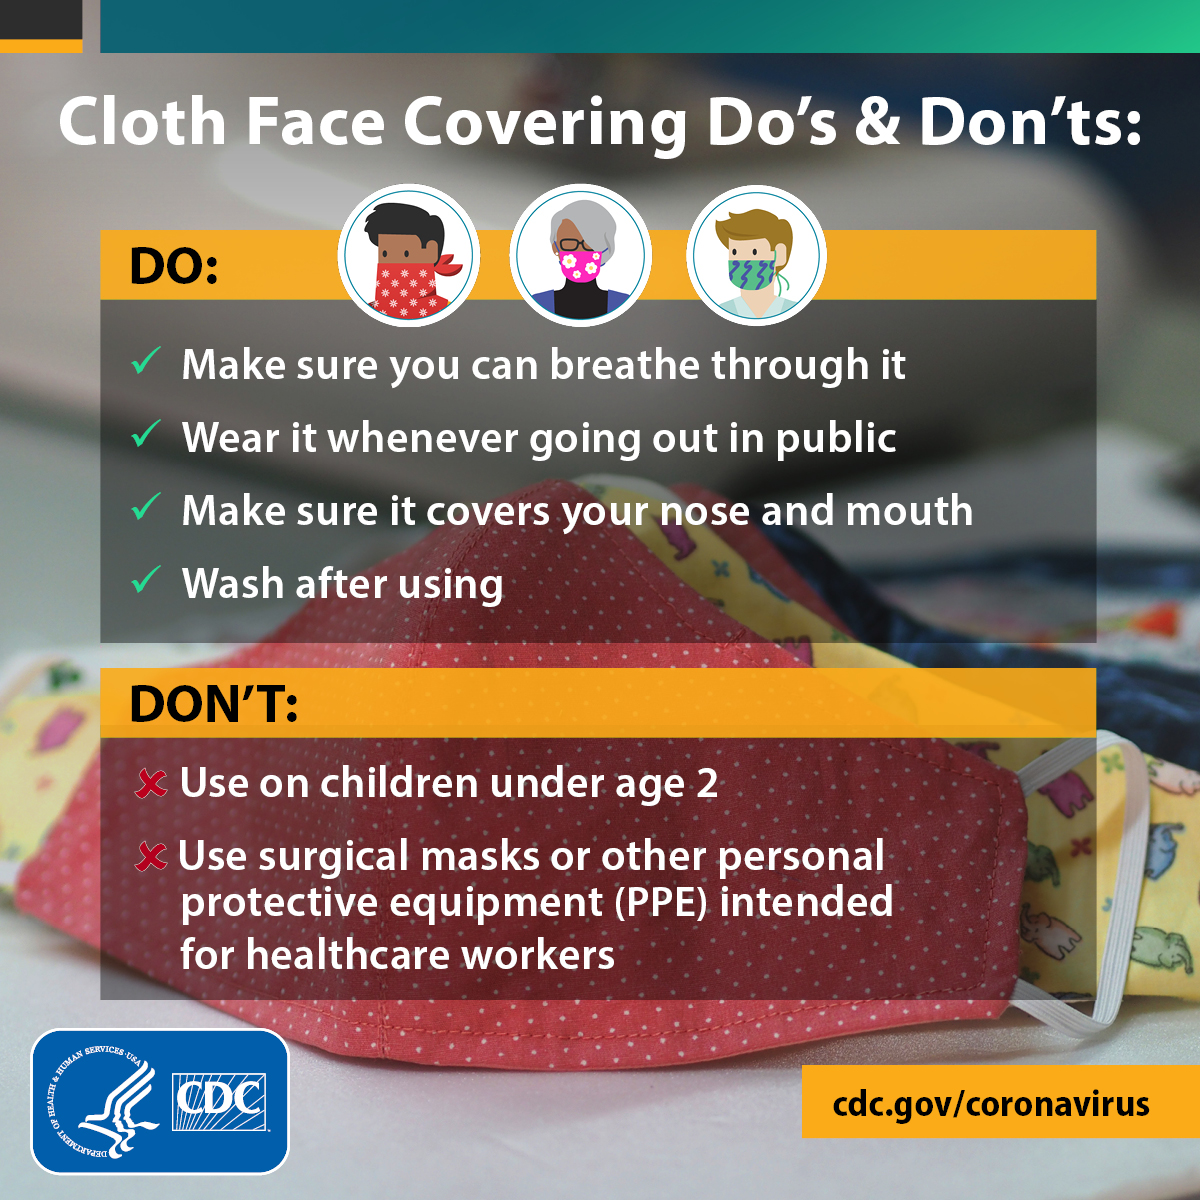 CDC recommends that everyone wear a face mask while out in public